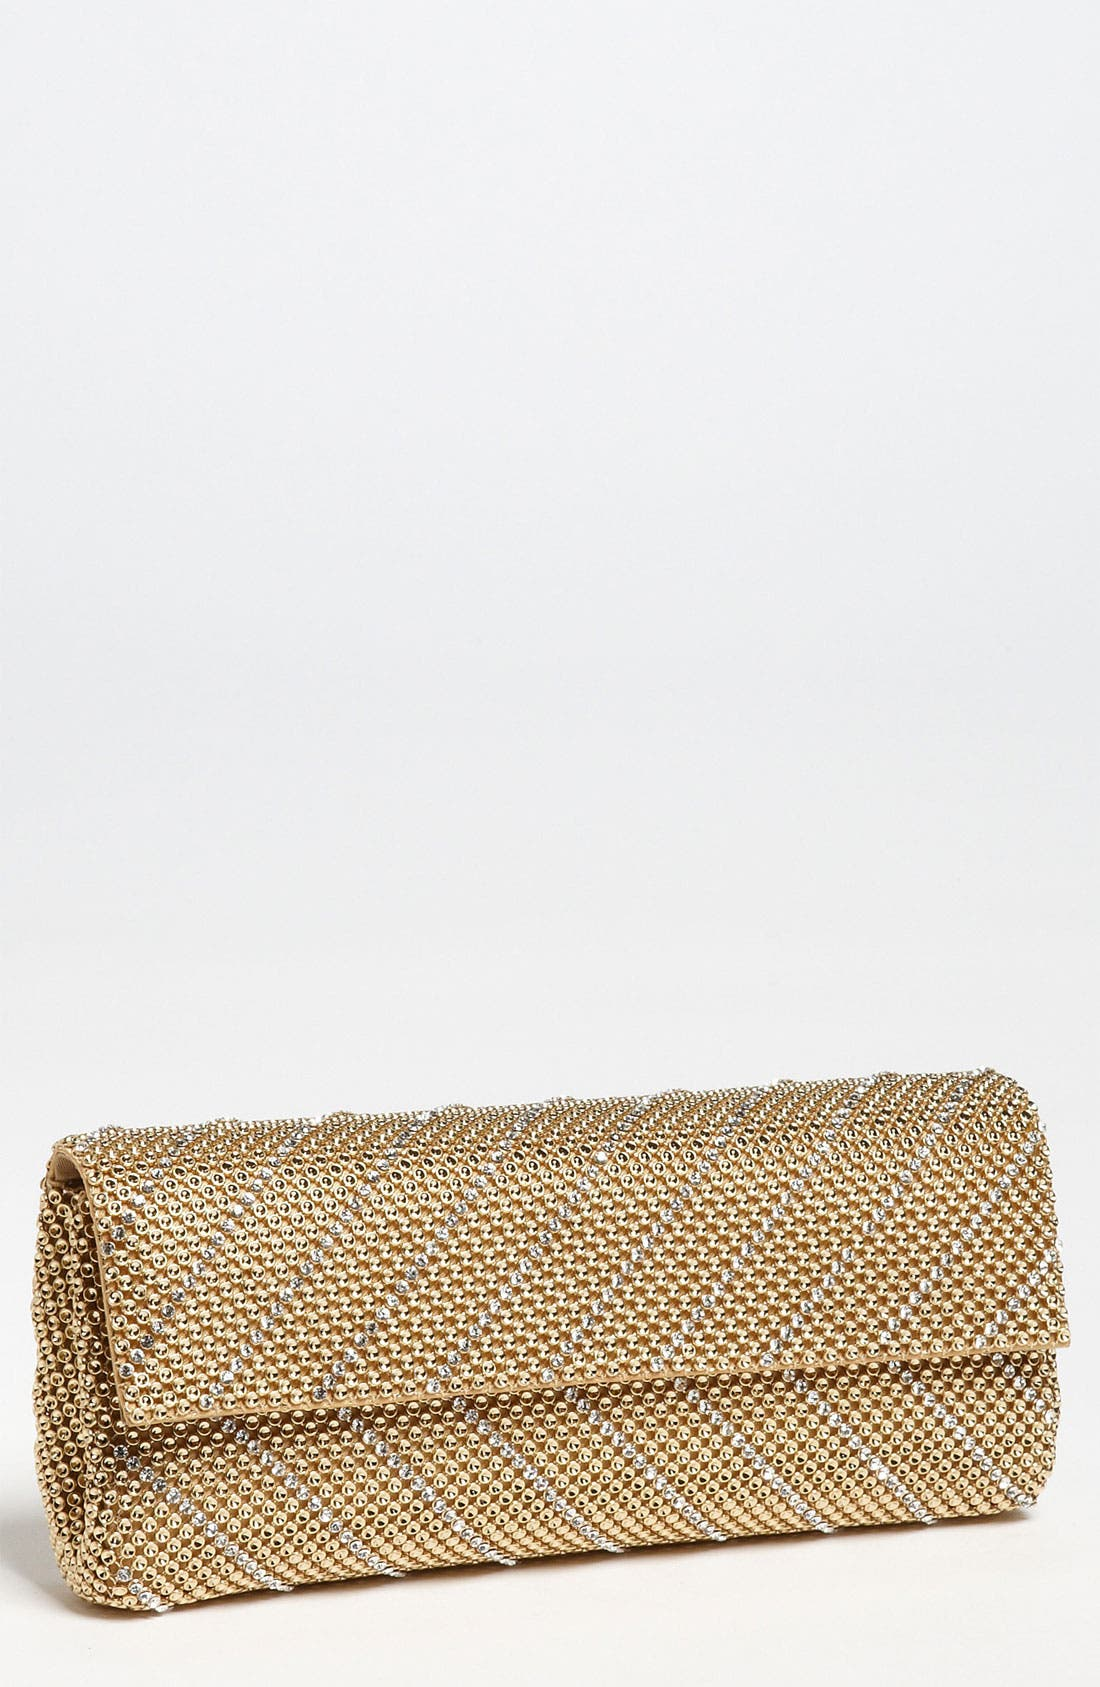 Alternate Image 1 Selected - Whiting & Davis 'Crystal Chevron' Flap Clutch